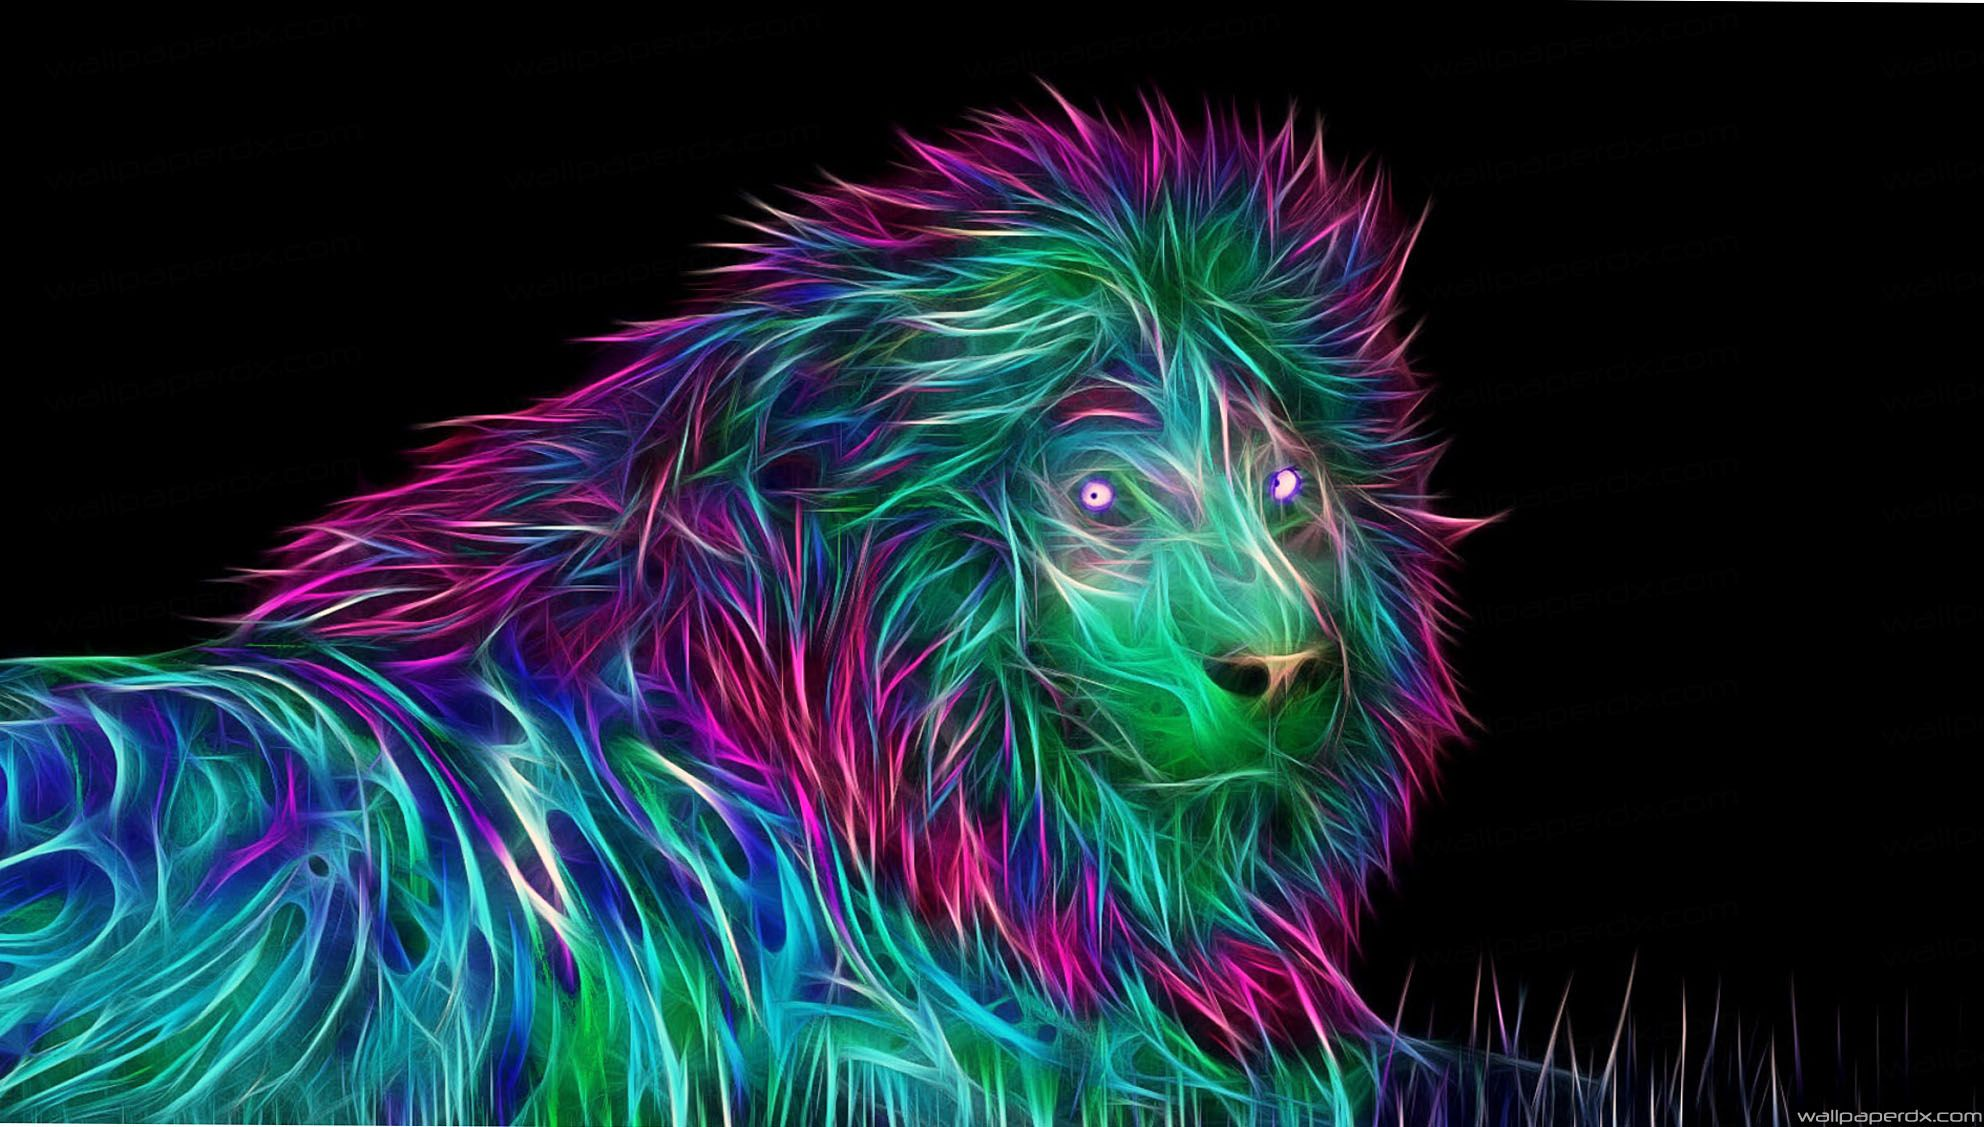 Abstract 3d Abstract Lion Negative Colorful Full Hd - Lion Full Hd 3d , HD Wallpaper & Backgrounds